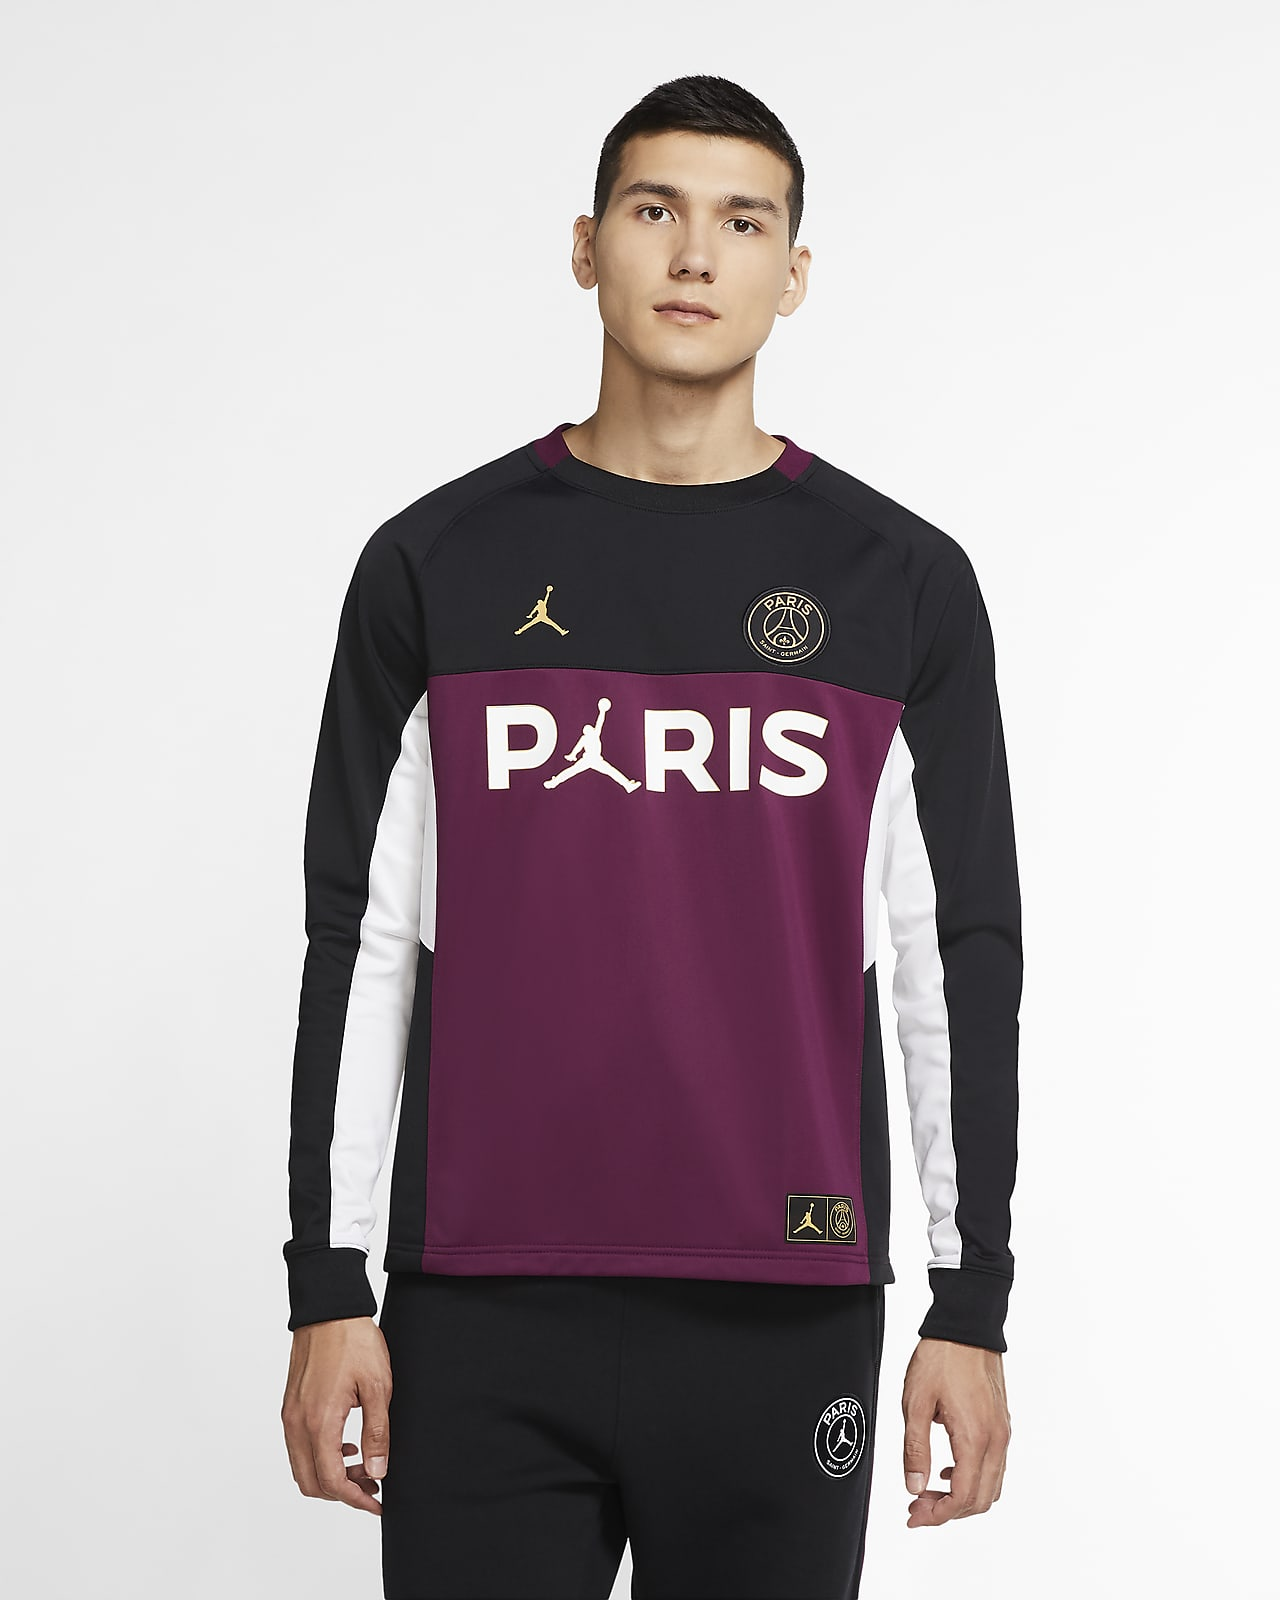 Paris Saint-Germain Men's Long-Sleeve Top